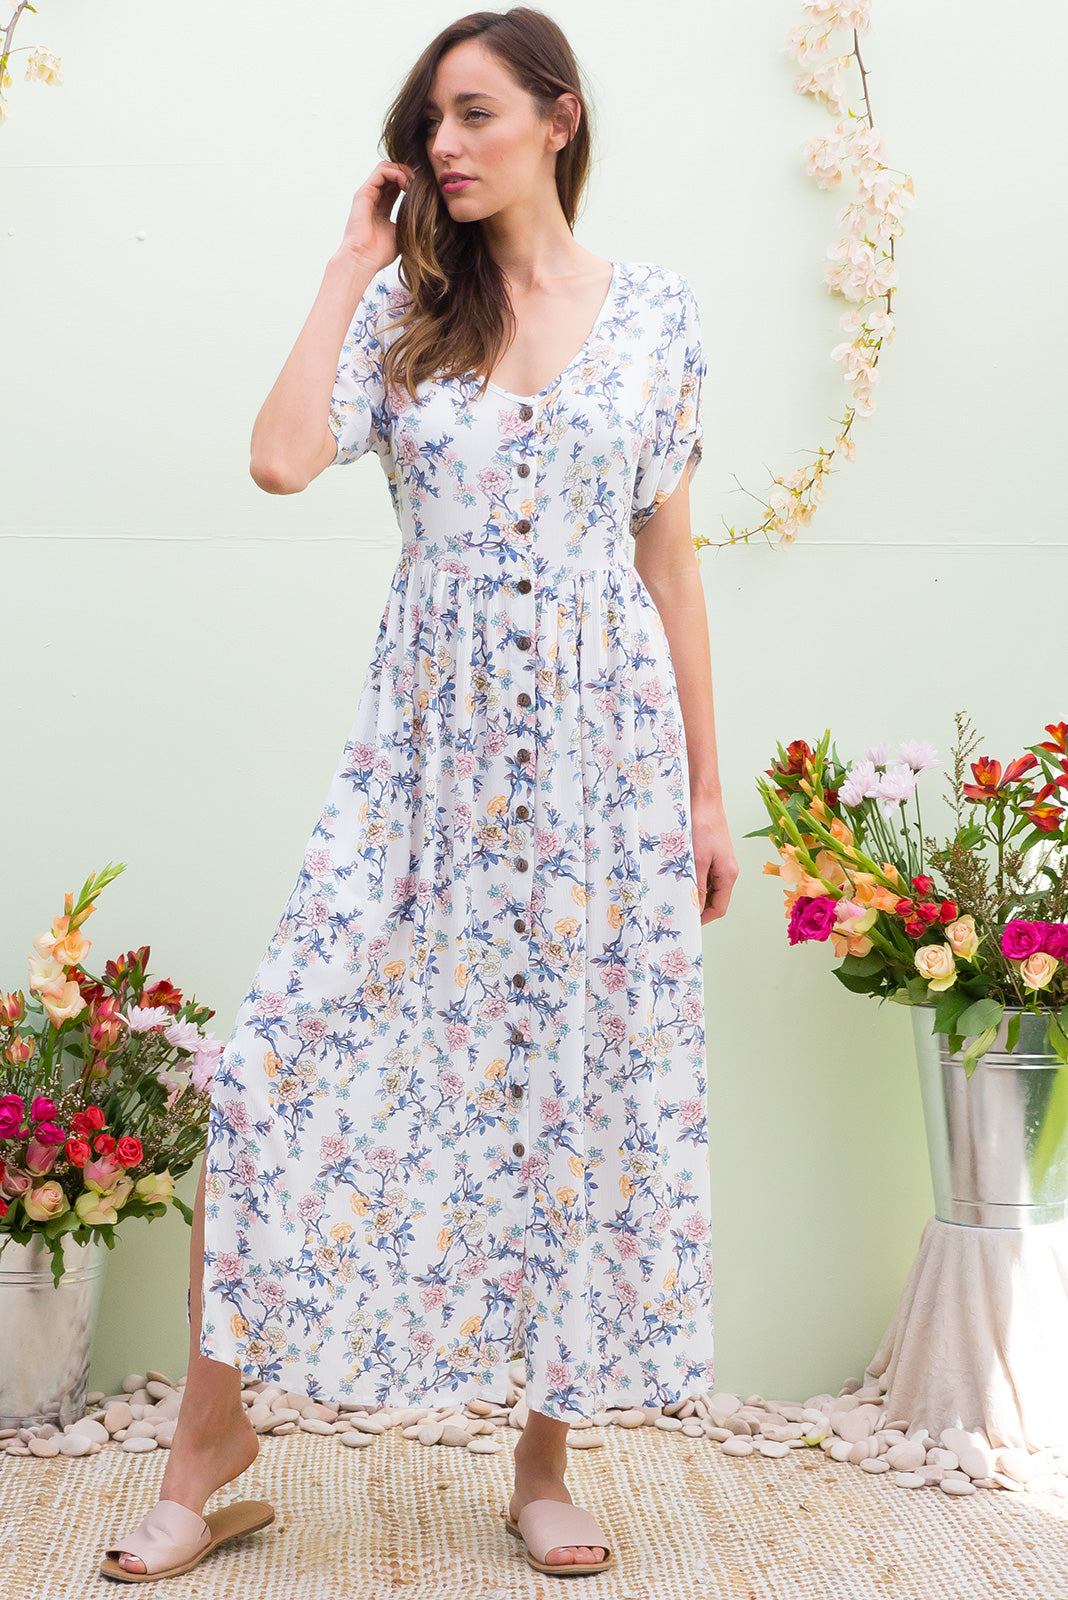 Rocco Winslow White button front maxi dress in white and pastel floral print on crinkled rayon fabric